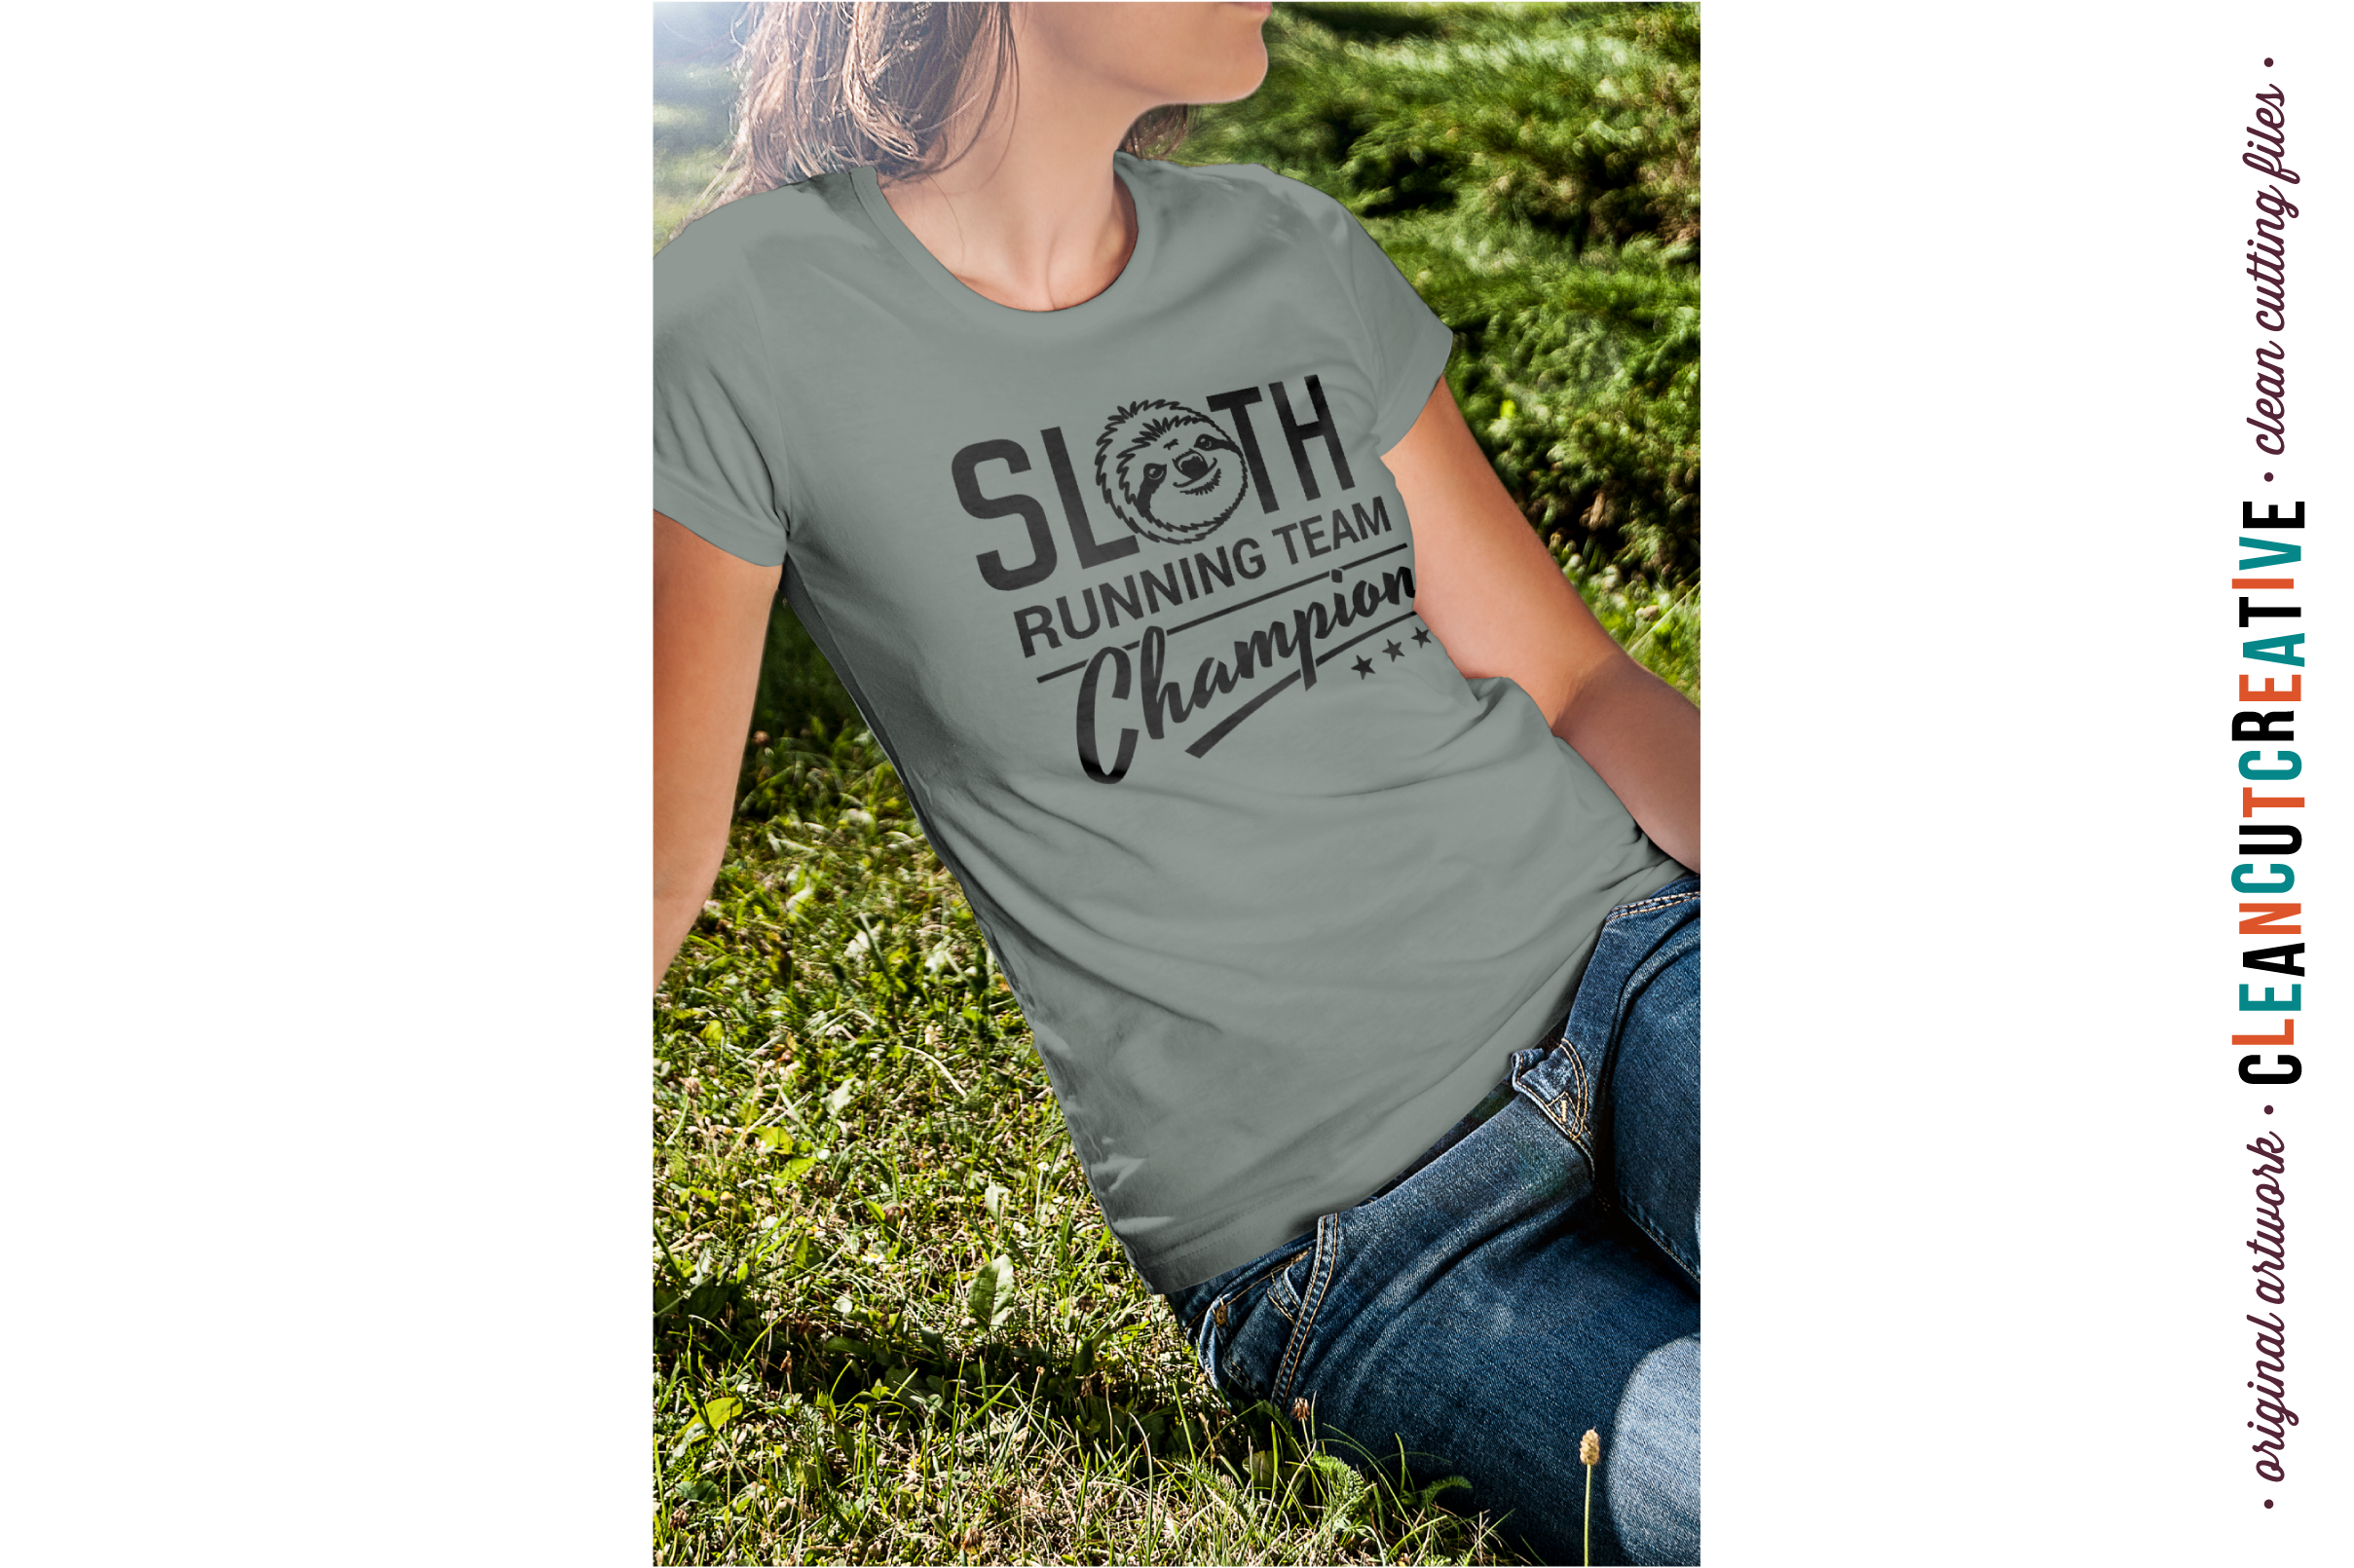 SLOTH RUNNING TEAM CHAMPION! - funny t-shirt design - SVG DXF EPS PNG - Cricut & Silhouette - clean cutting files example image 2